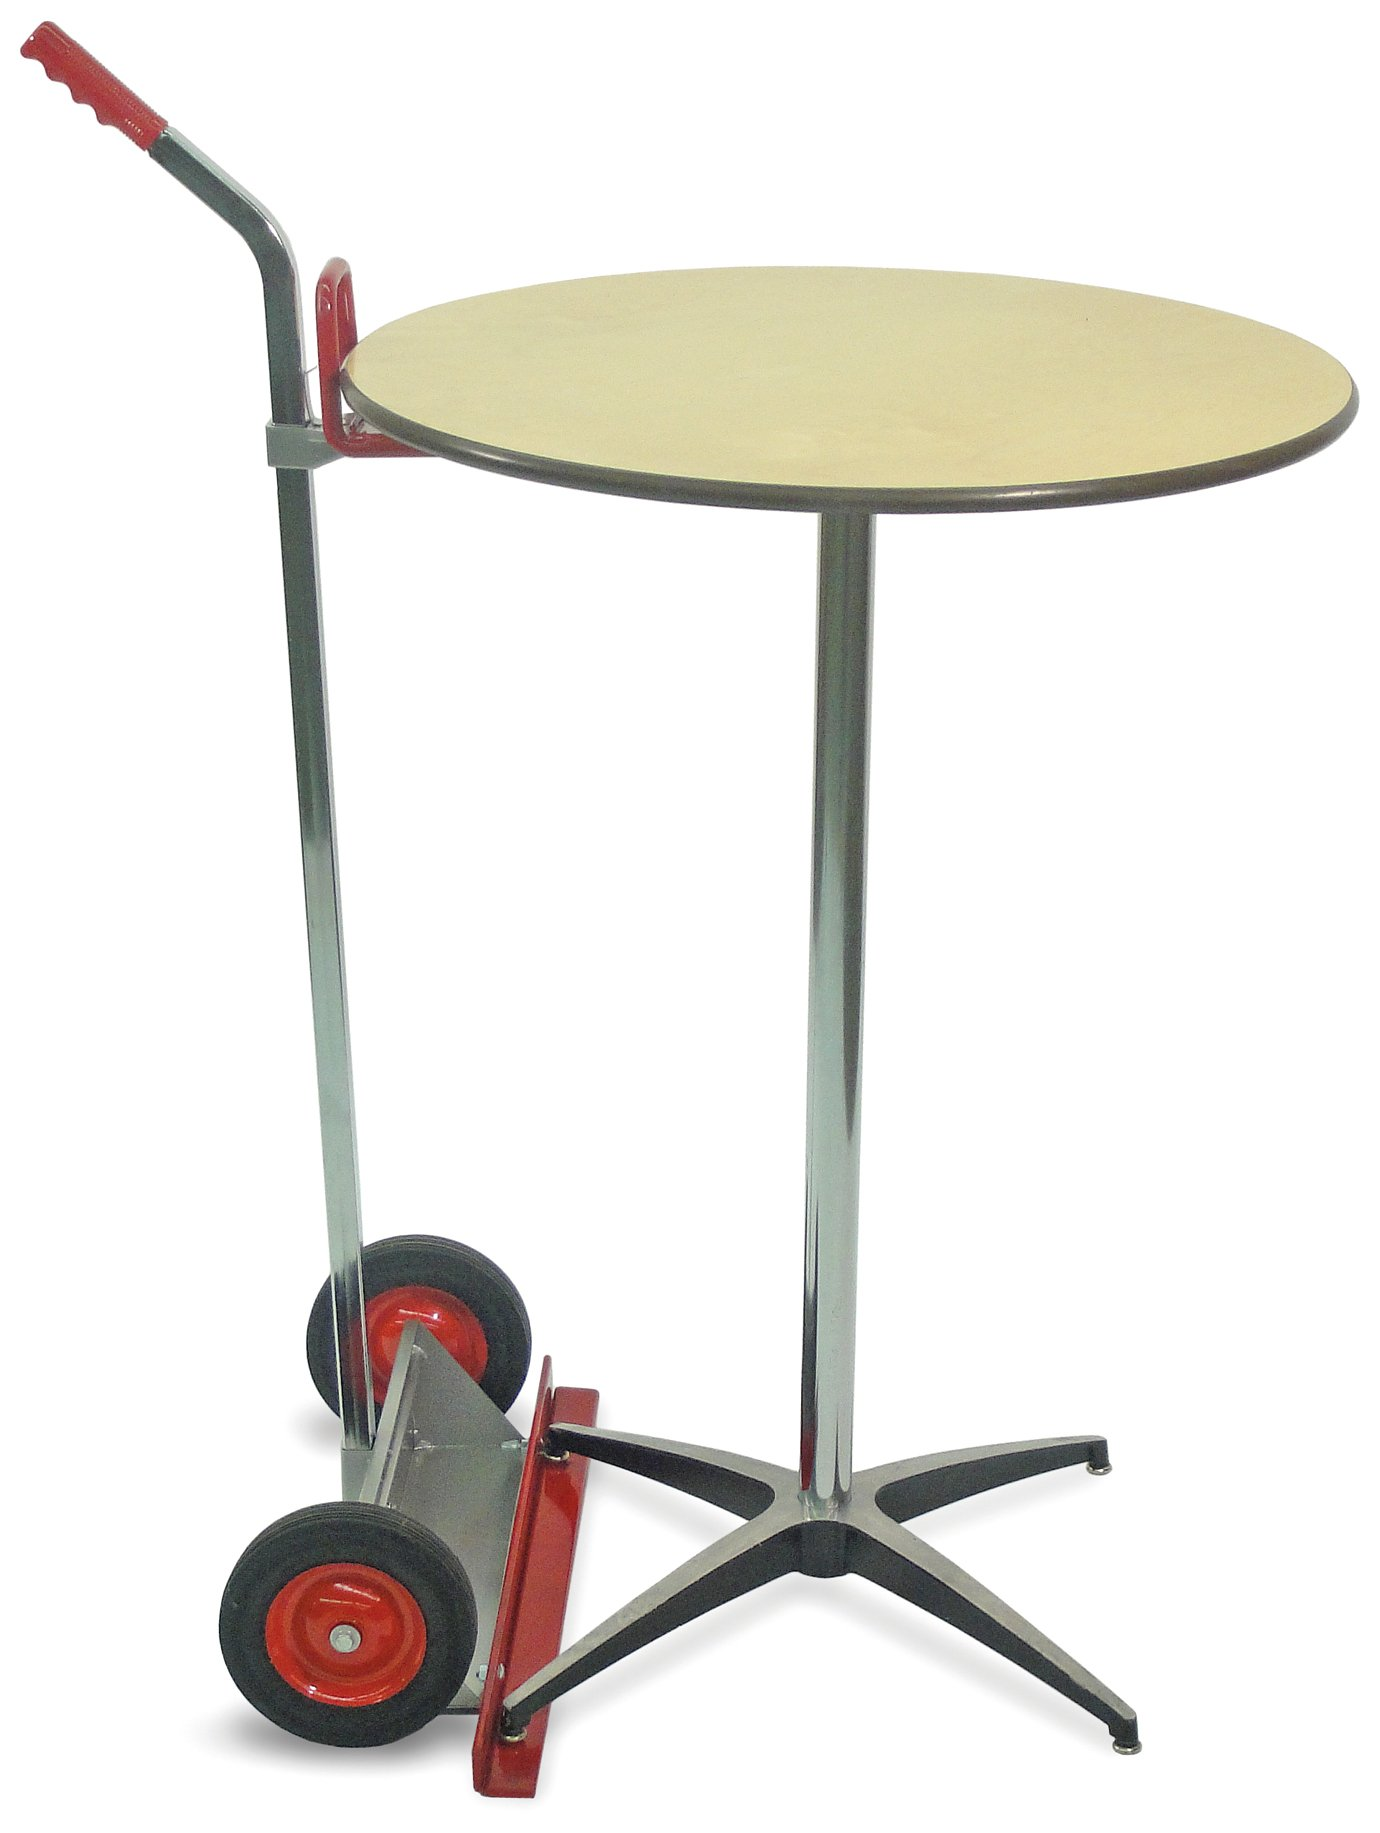 Raymond Steel Table Lift with Chrome Plated Handle, 200 lbs Load Capacity, 30'' Depth